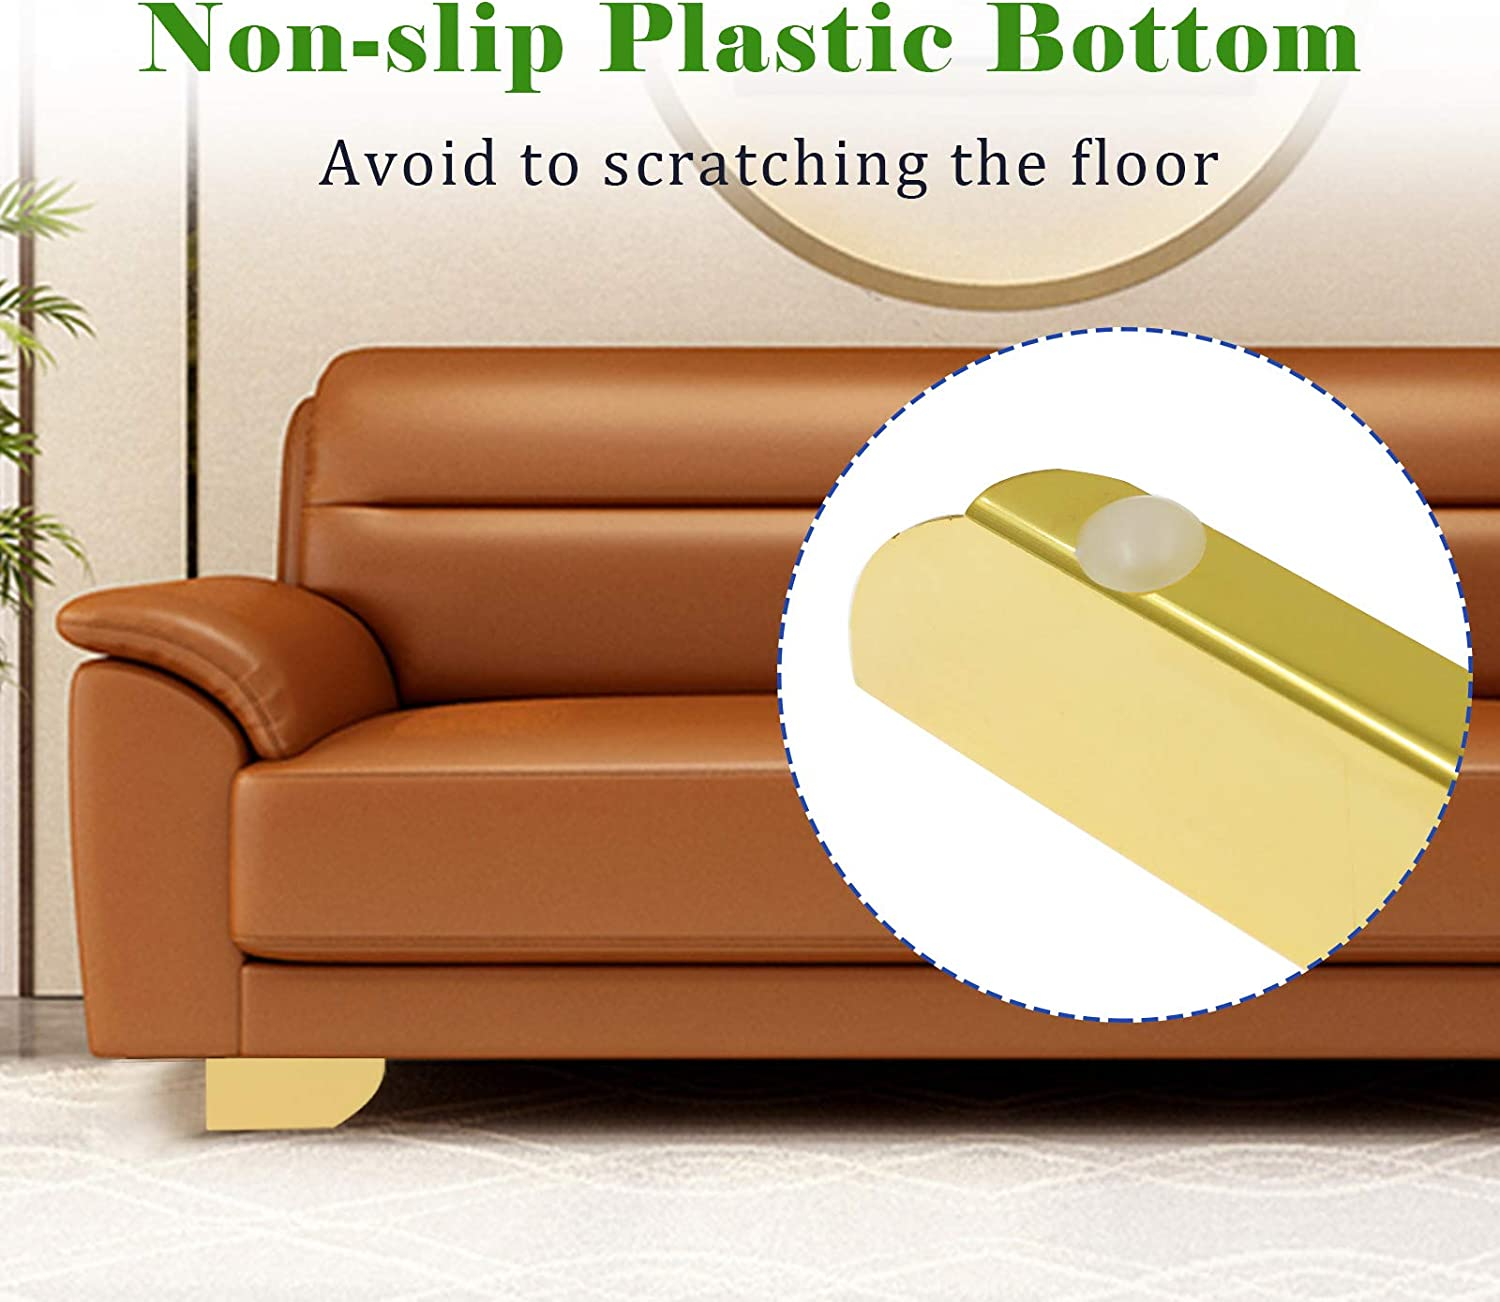 Zorfeter 2 Inch Furniture Legs Gold Set of 4 Metal Sofa Feets DIY Replacement Parts Minimalist Design for Cabinet Cupboard Sofa Couch